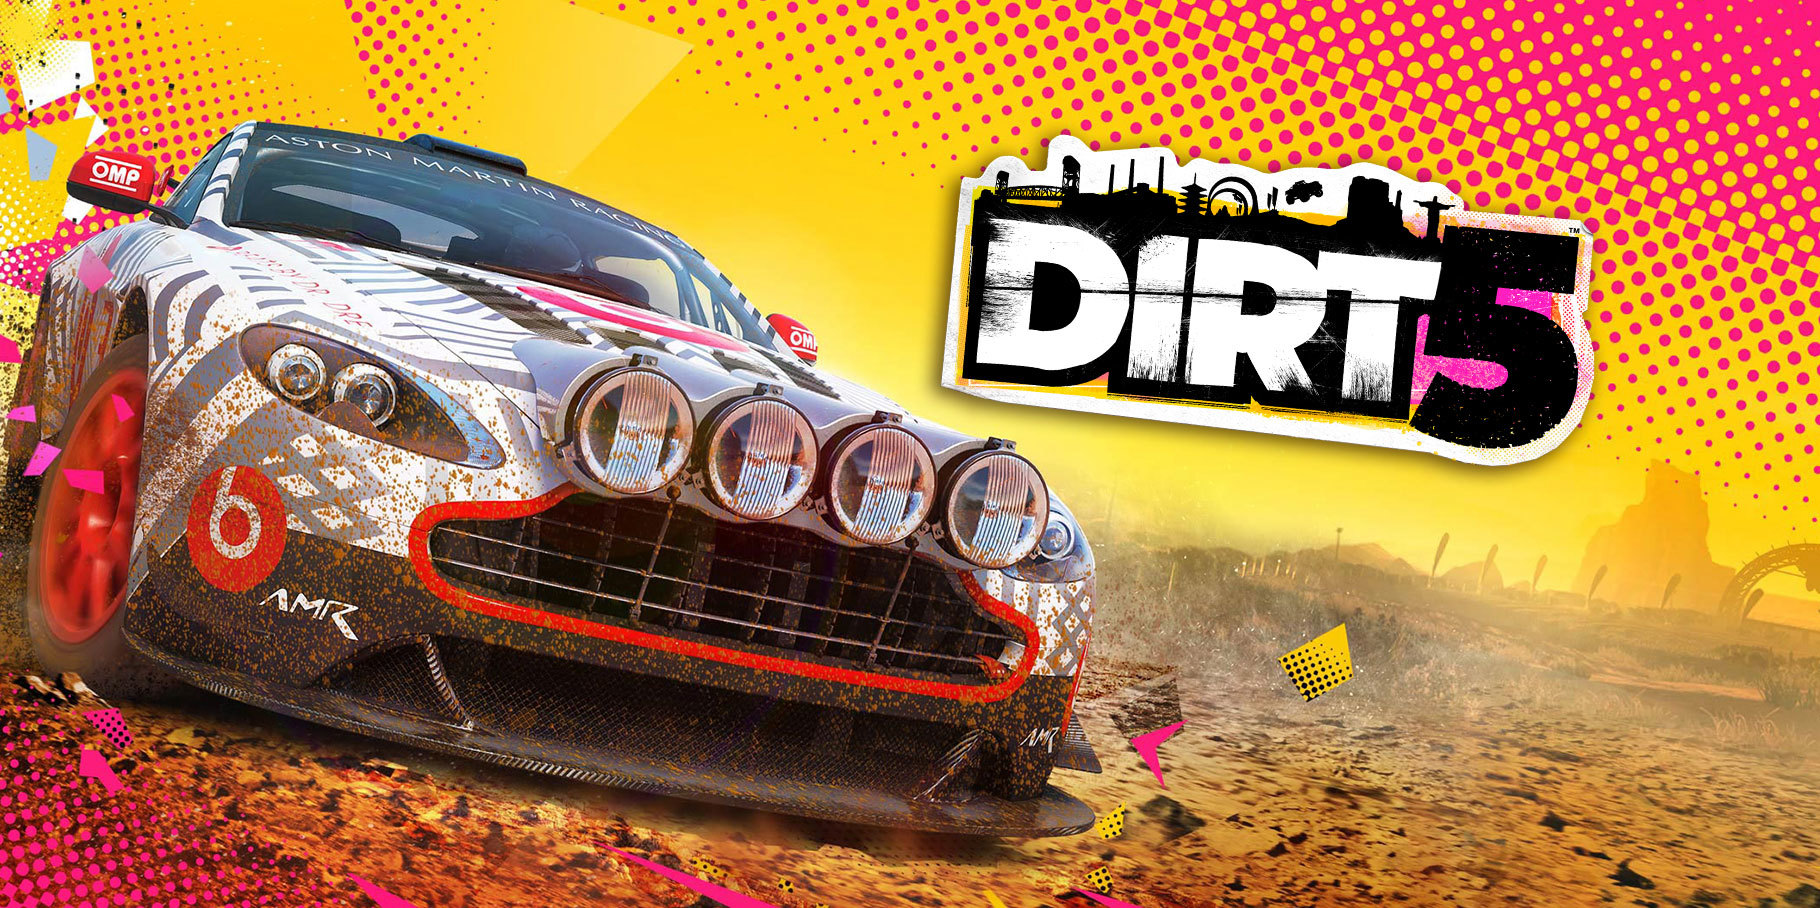 Check out some Cape Town stadium racing in Dirt 5 - Gamereactor UK